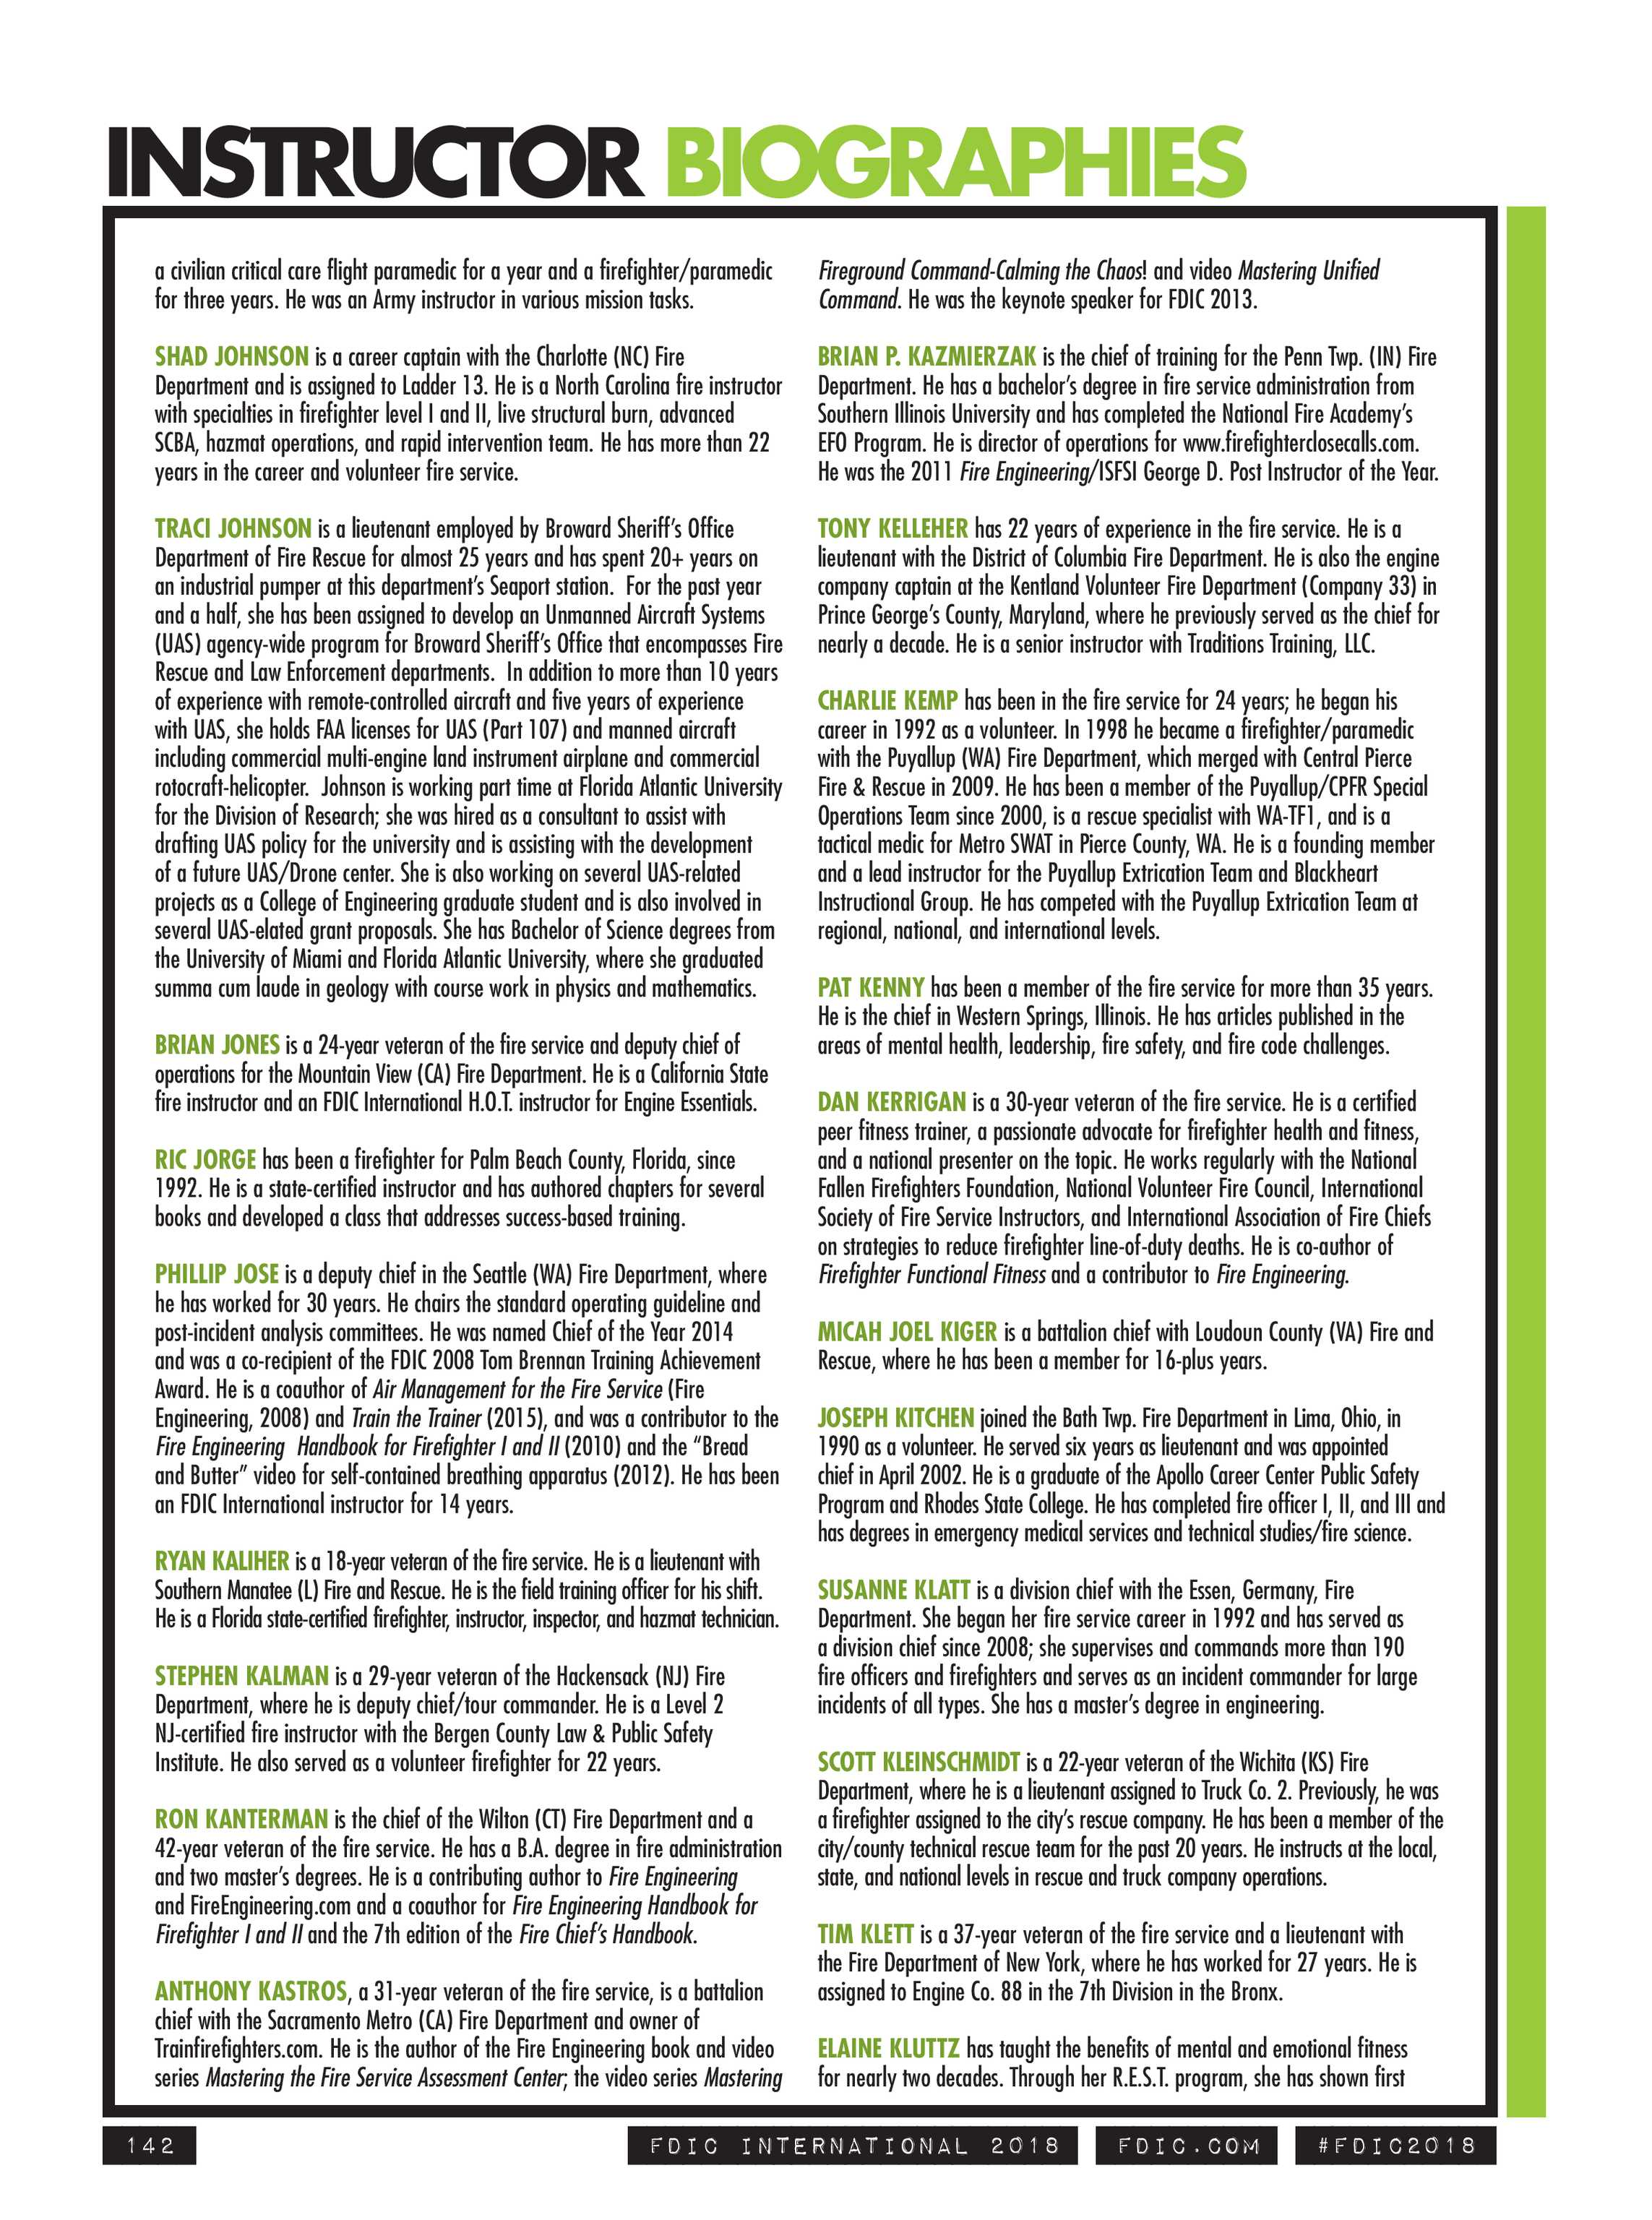 Pennwell Supplements - FDIC 2018 Show Guide - page 142